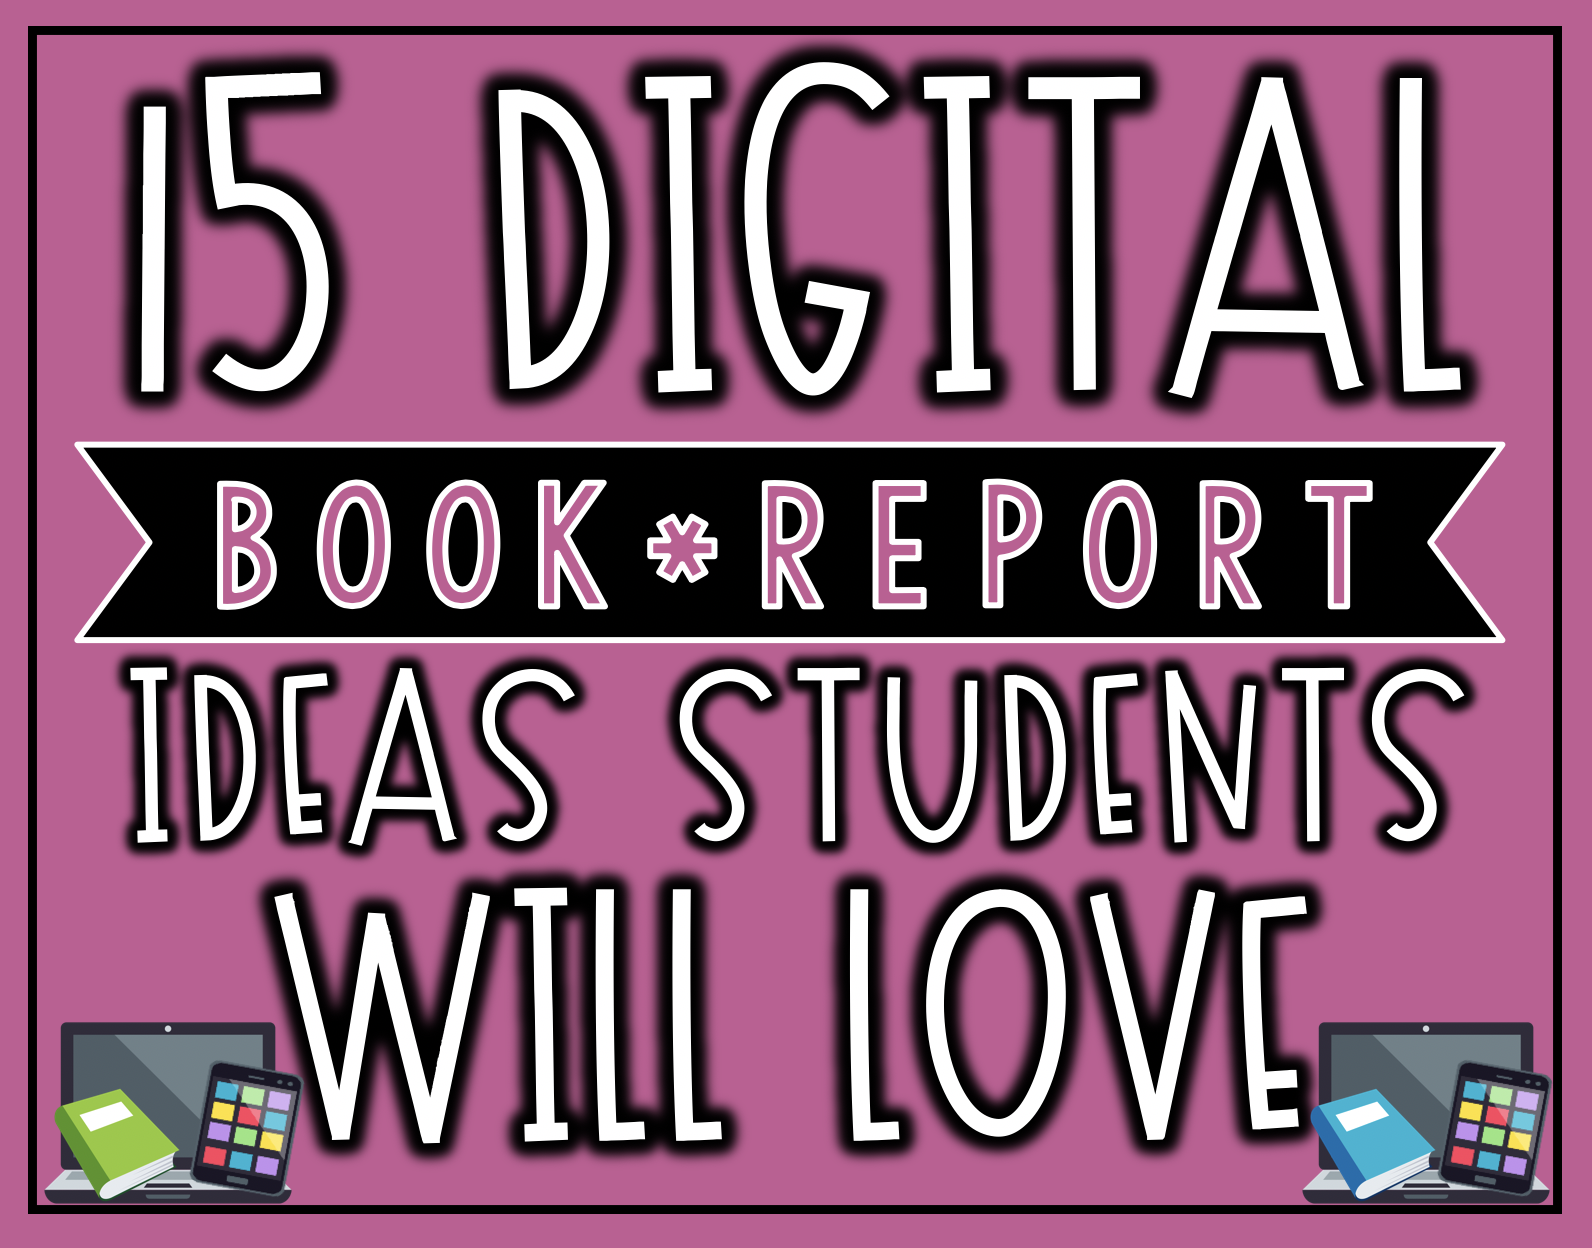 15 Digital Book Report Ideas Your Students Will LOVE   The Techie Teacher® [ 1248 x 1592 Pixel ]